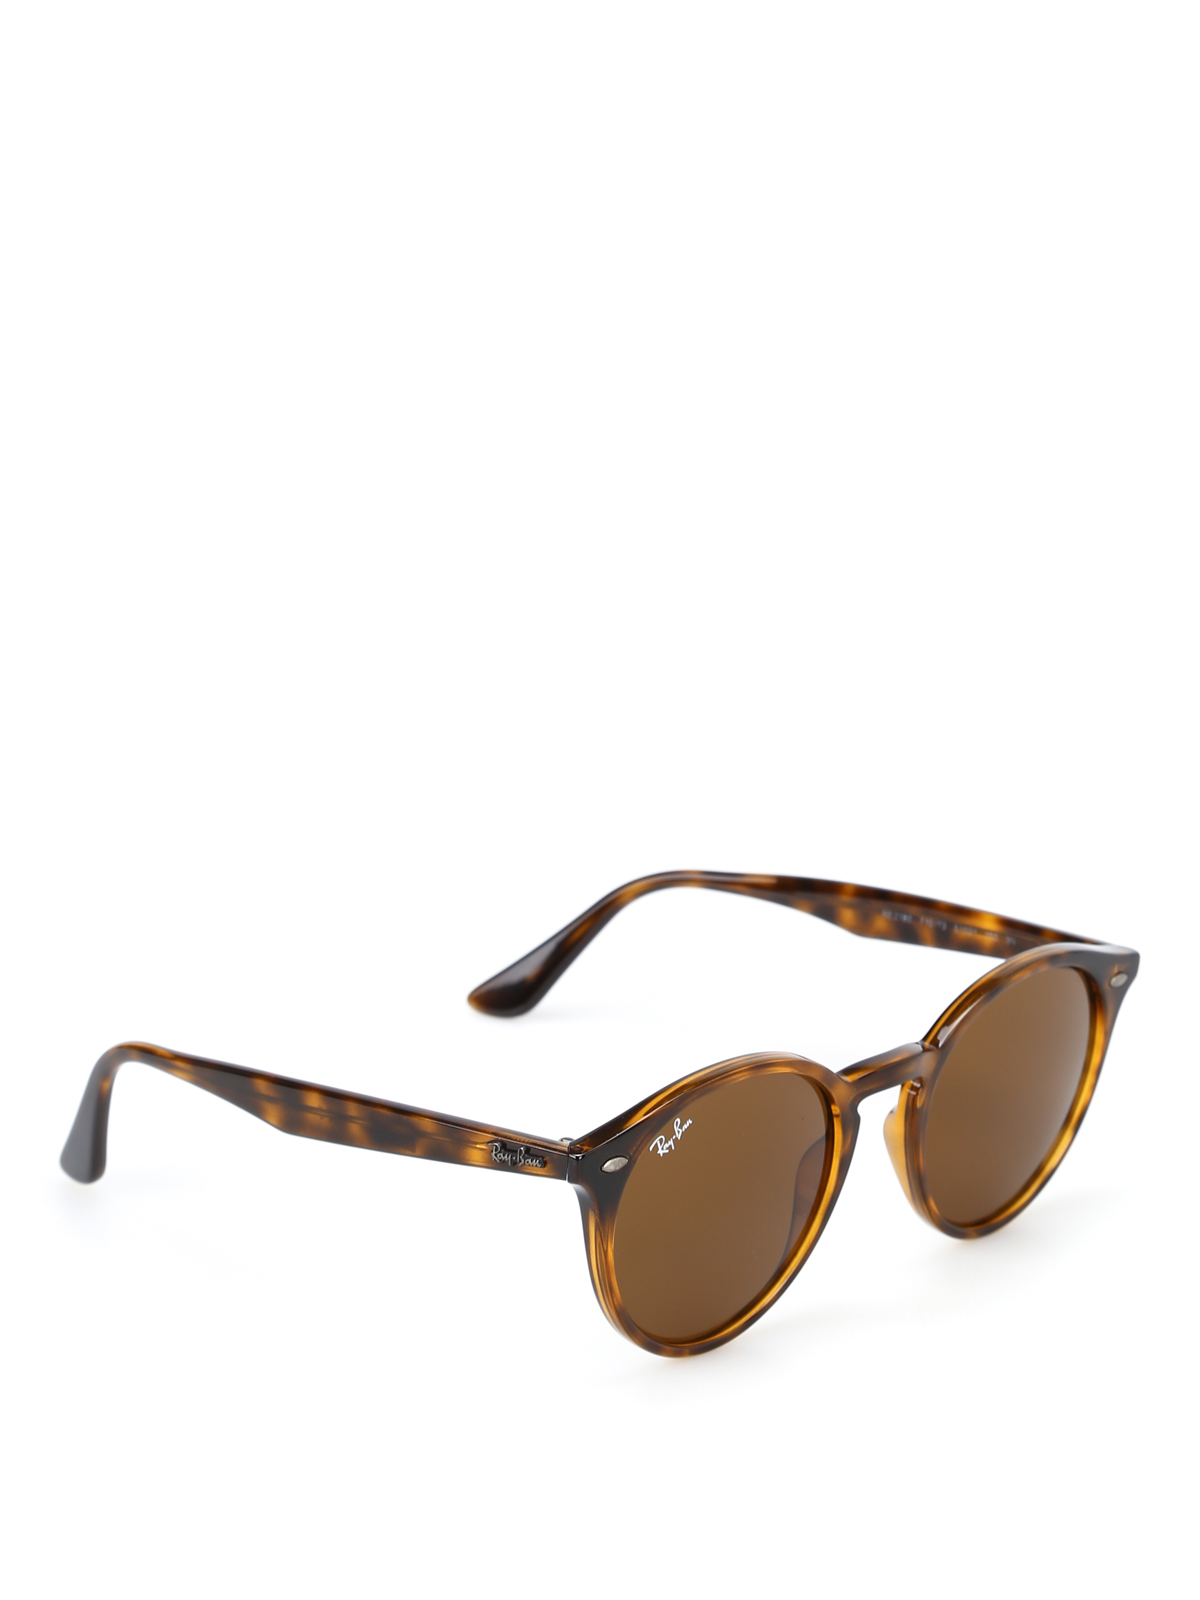 3aa0d02a088e Ray Ban - Brown tortoise sunglasses - sunglasses - RB2180 710 73